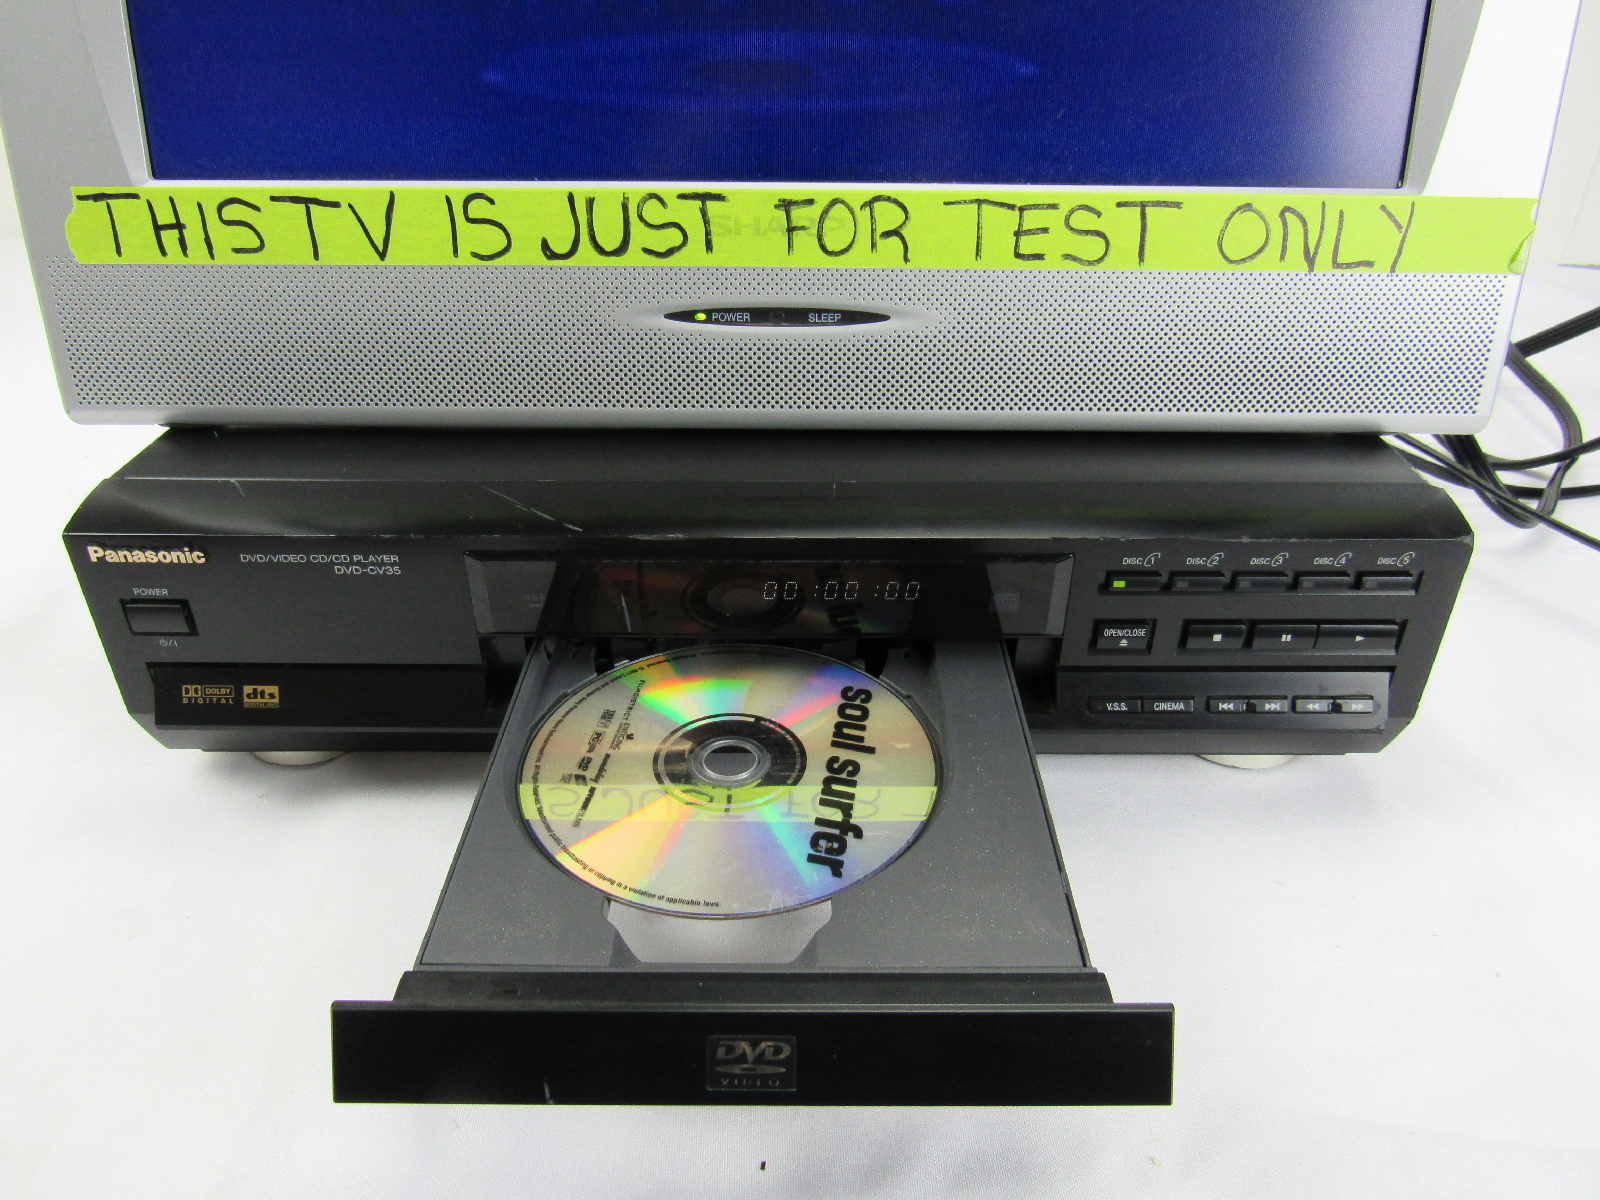 panasonic dvd cv35 5 disc cd dvd player tested working. Black Bedroom Furniture Sets. Home Design Ideas